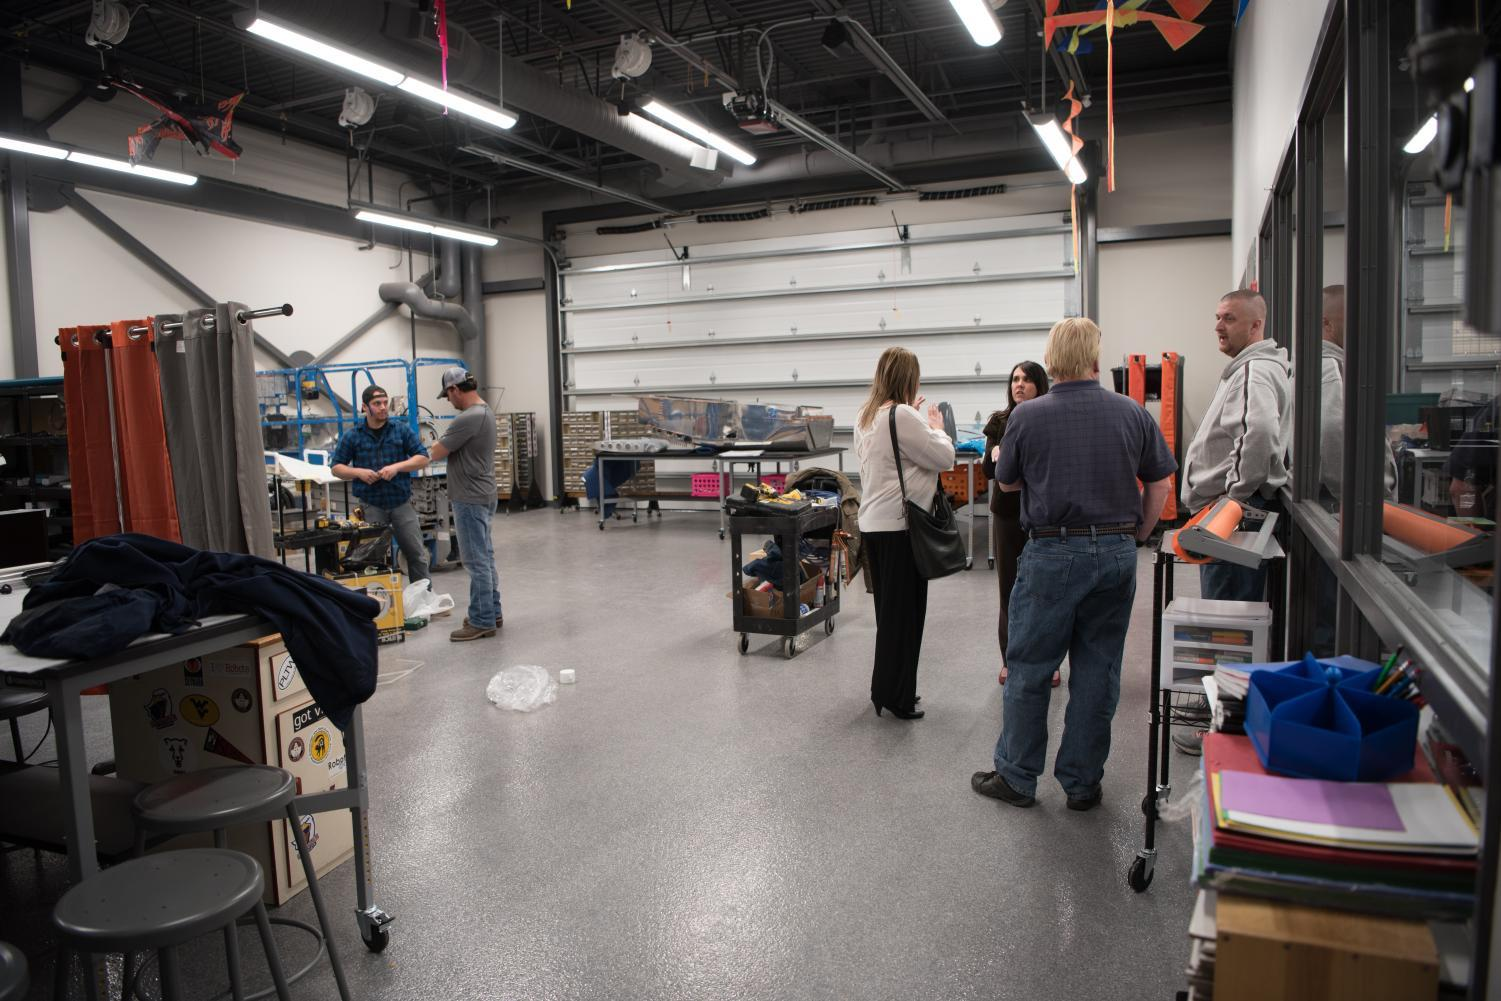 This+is+the+new+aviation+engineering+room+where+students+are+building+a+certified+airplane.+Students+are+being+guided+by+current+college+aviation+engineers+and+flight+instructors.+